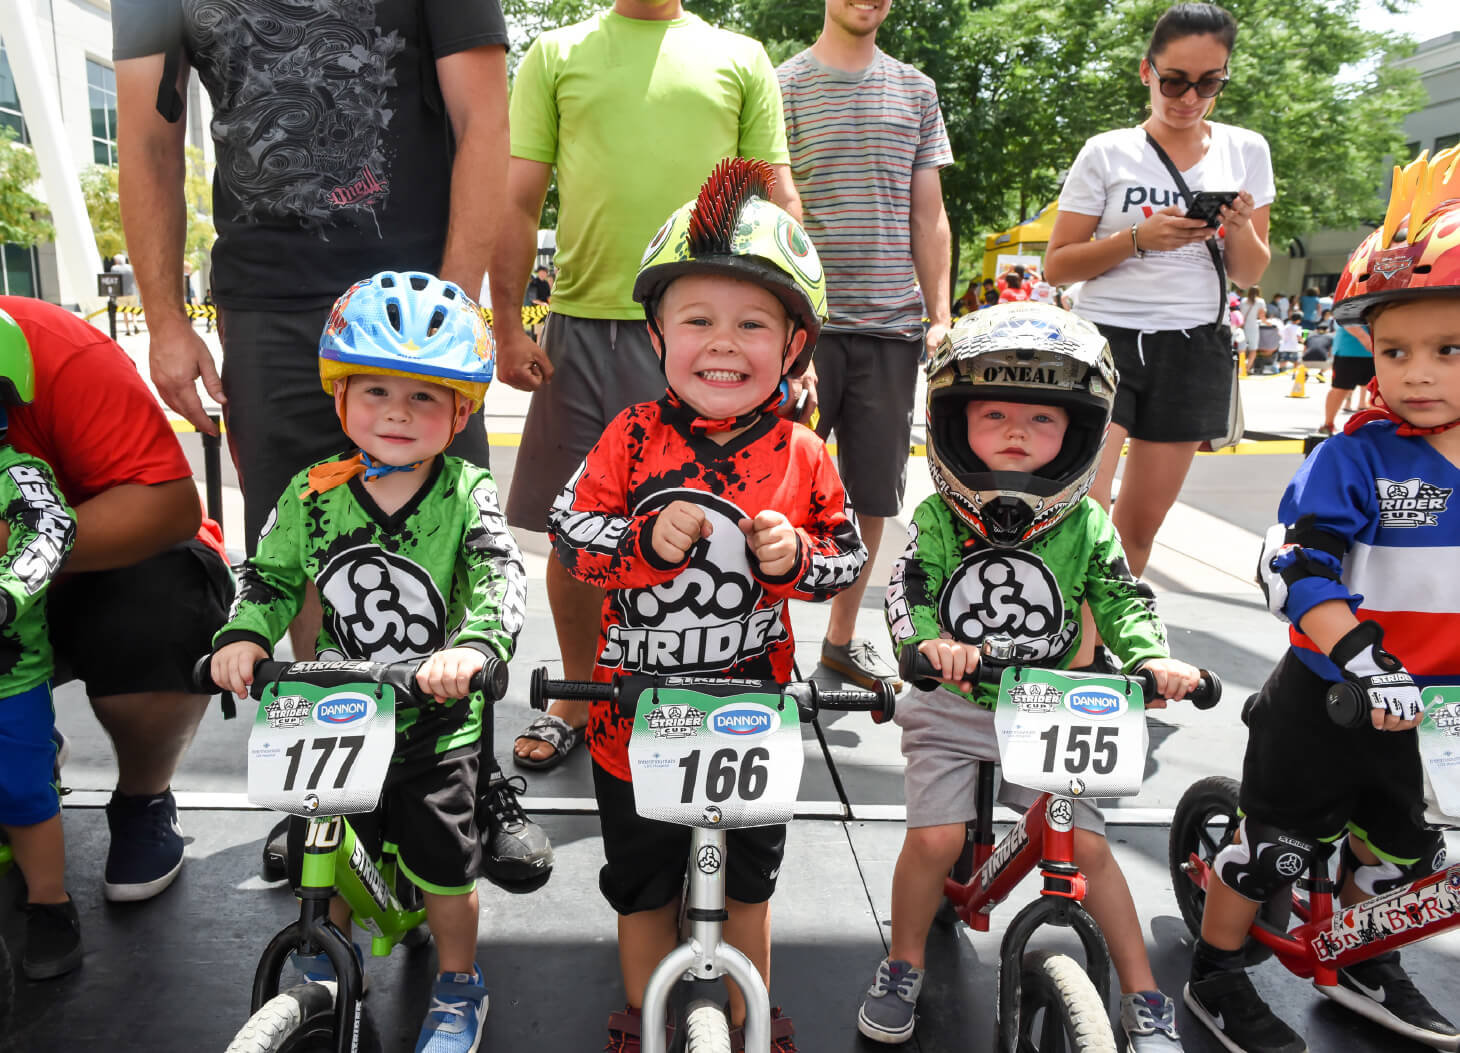 , Strider Events, Strider Balance Bikes